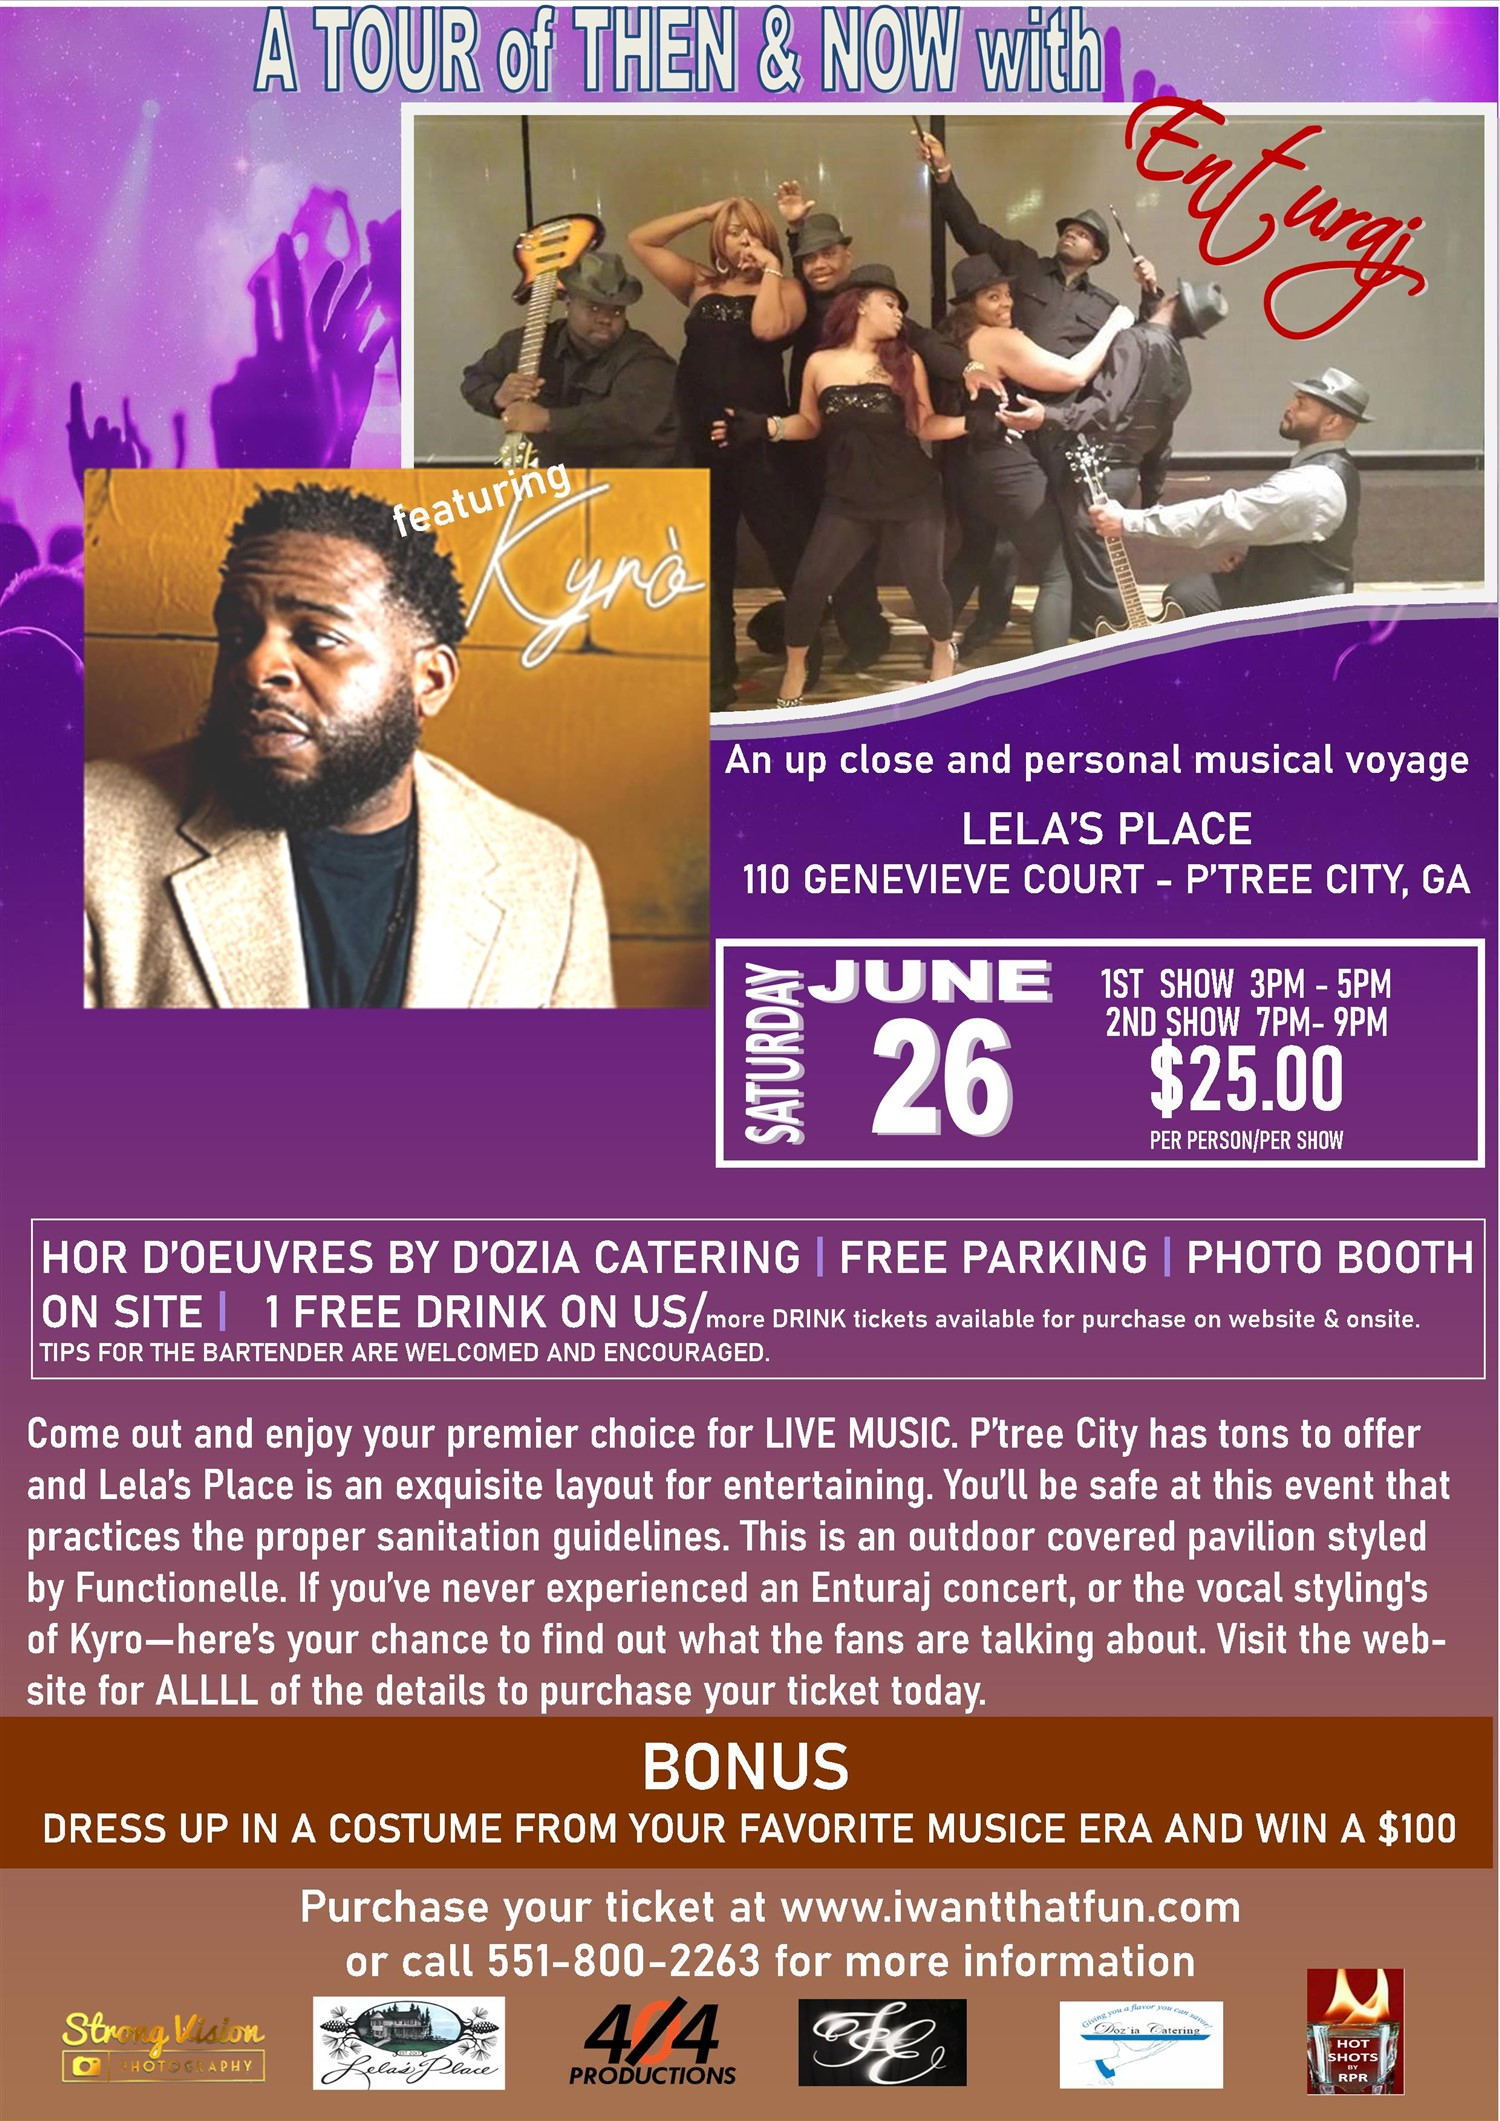 A Tour of Then and Now with Enturaj an up close and personal musical voyage on jun. 26, 15:00@Lela's Place - Buy tickets and Get information on iwantthatfun